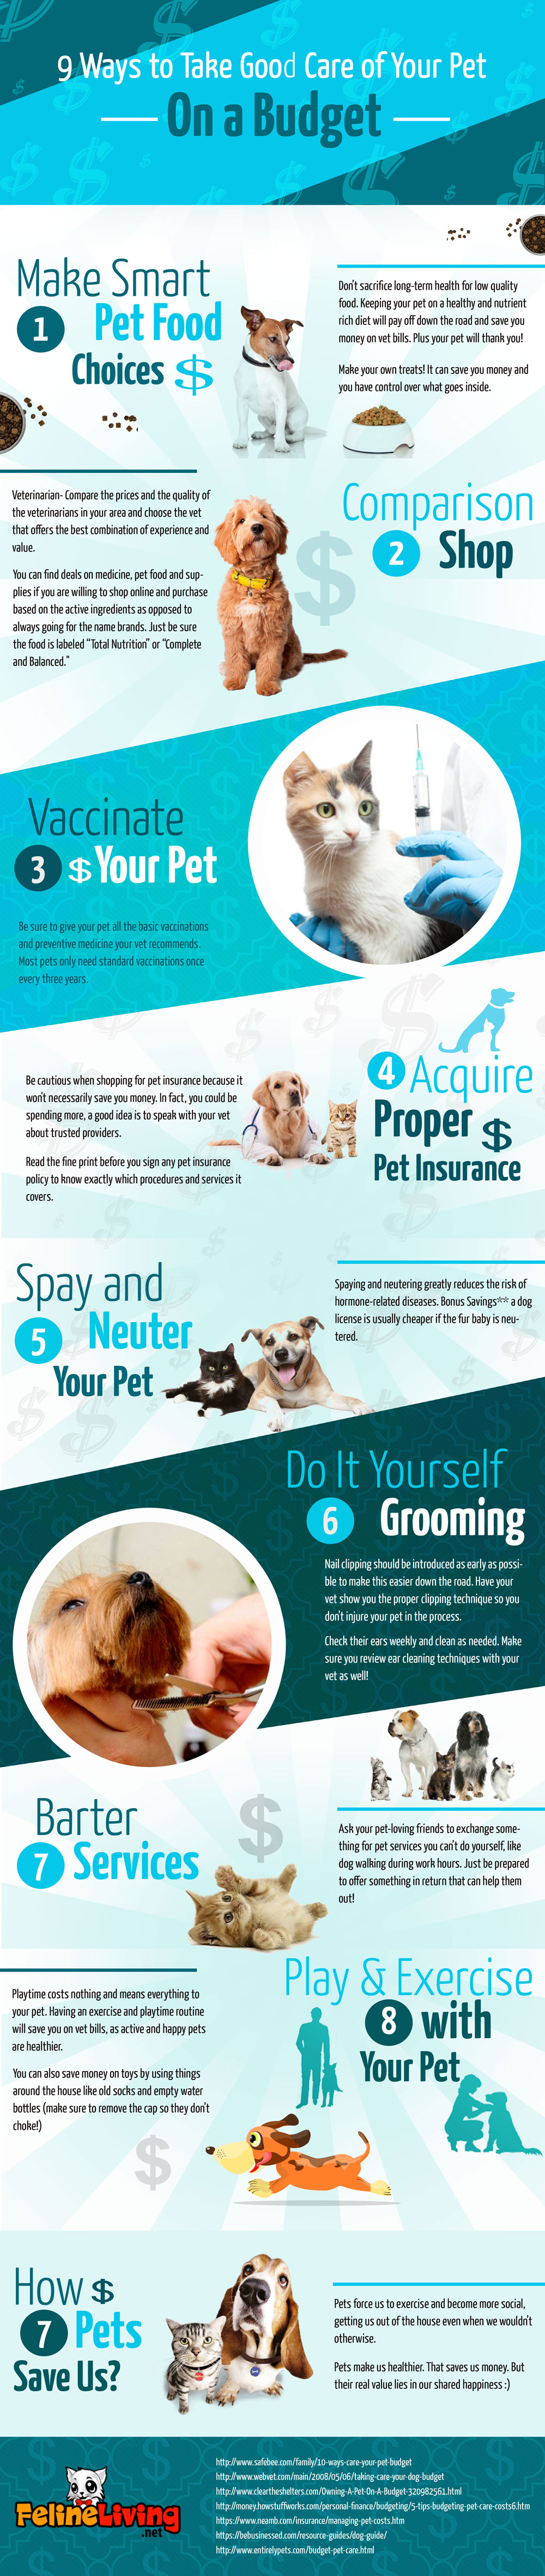 Pet Care on a Budget Infographic